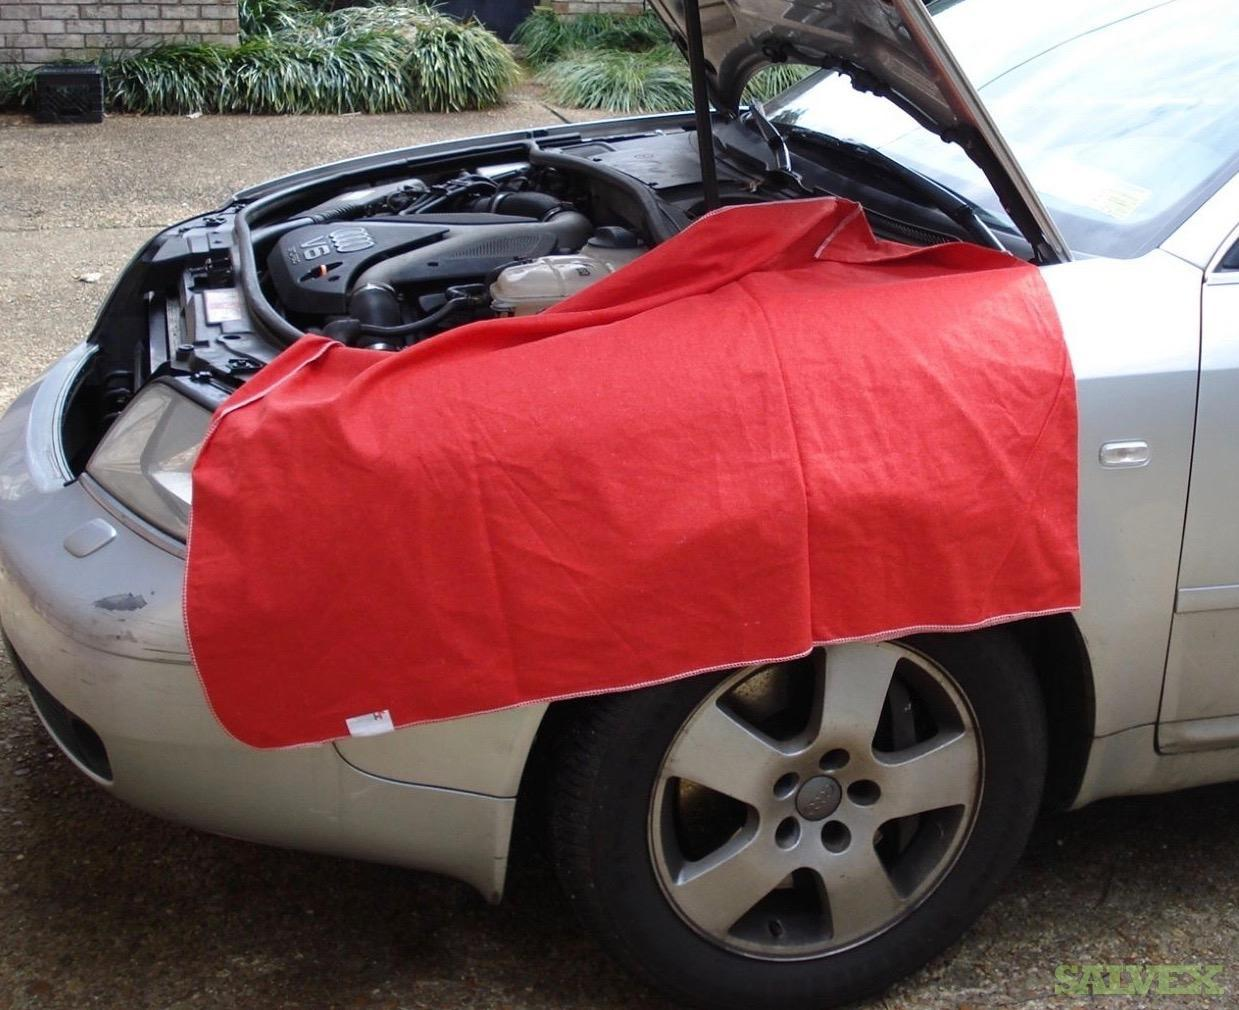 Flannel Fender Covers & Seat Covers (17,250 Pieces)